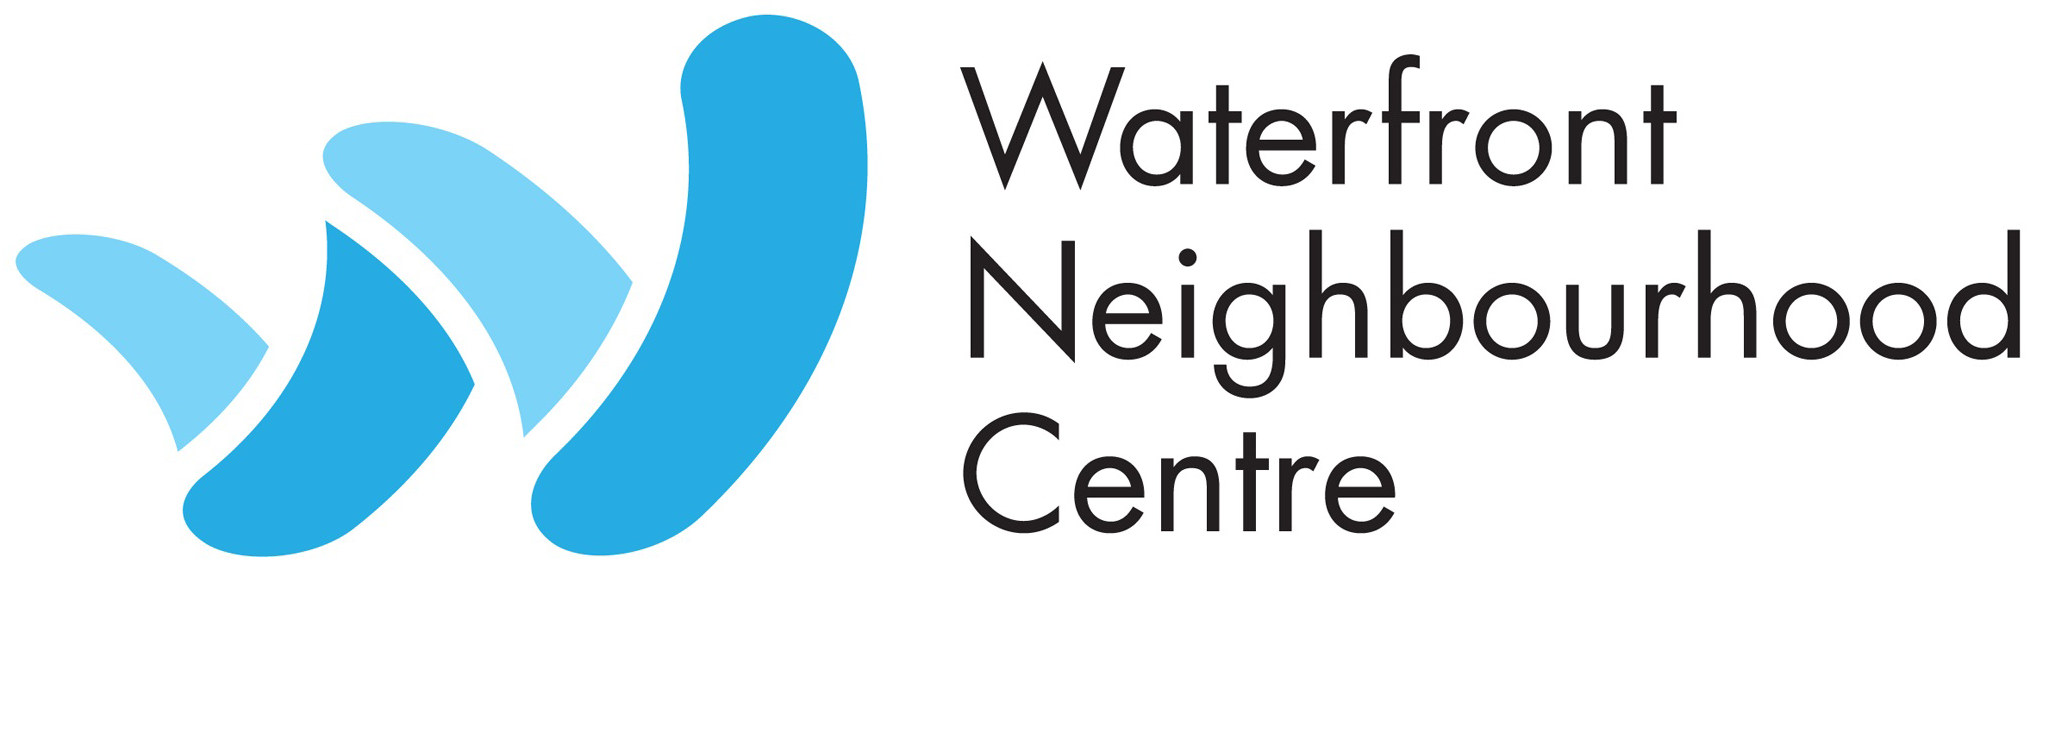 WaterfrontNeighbourhoodCentre.png